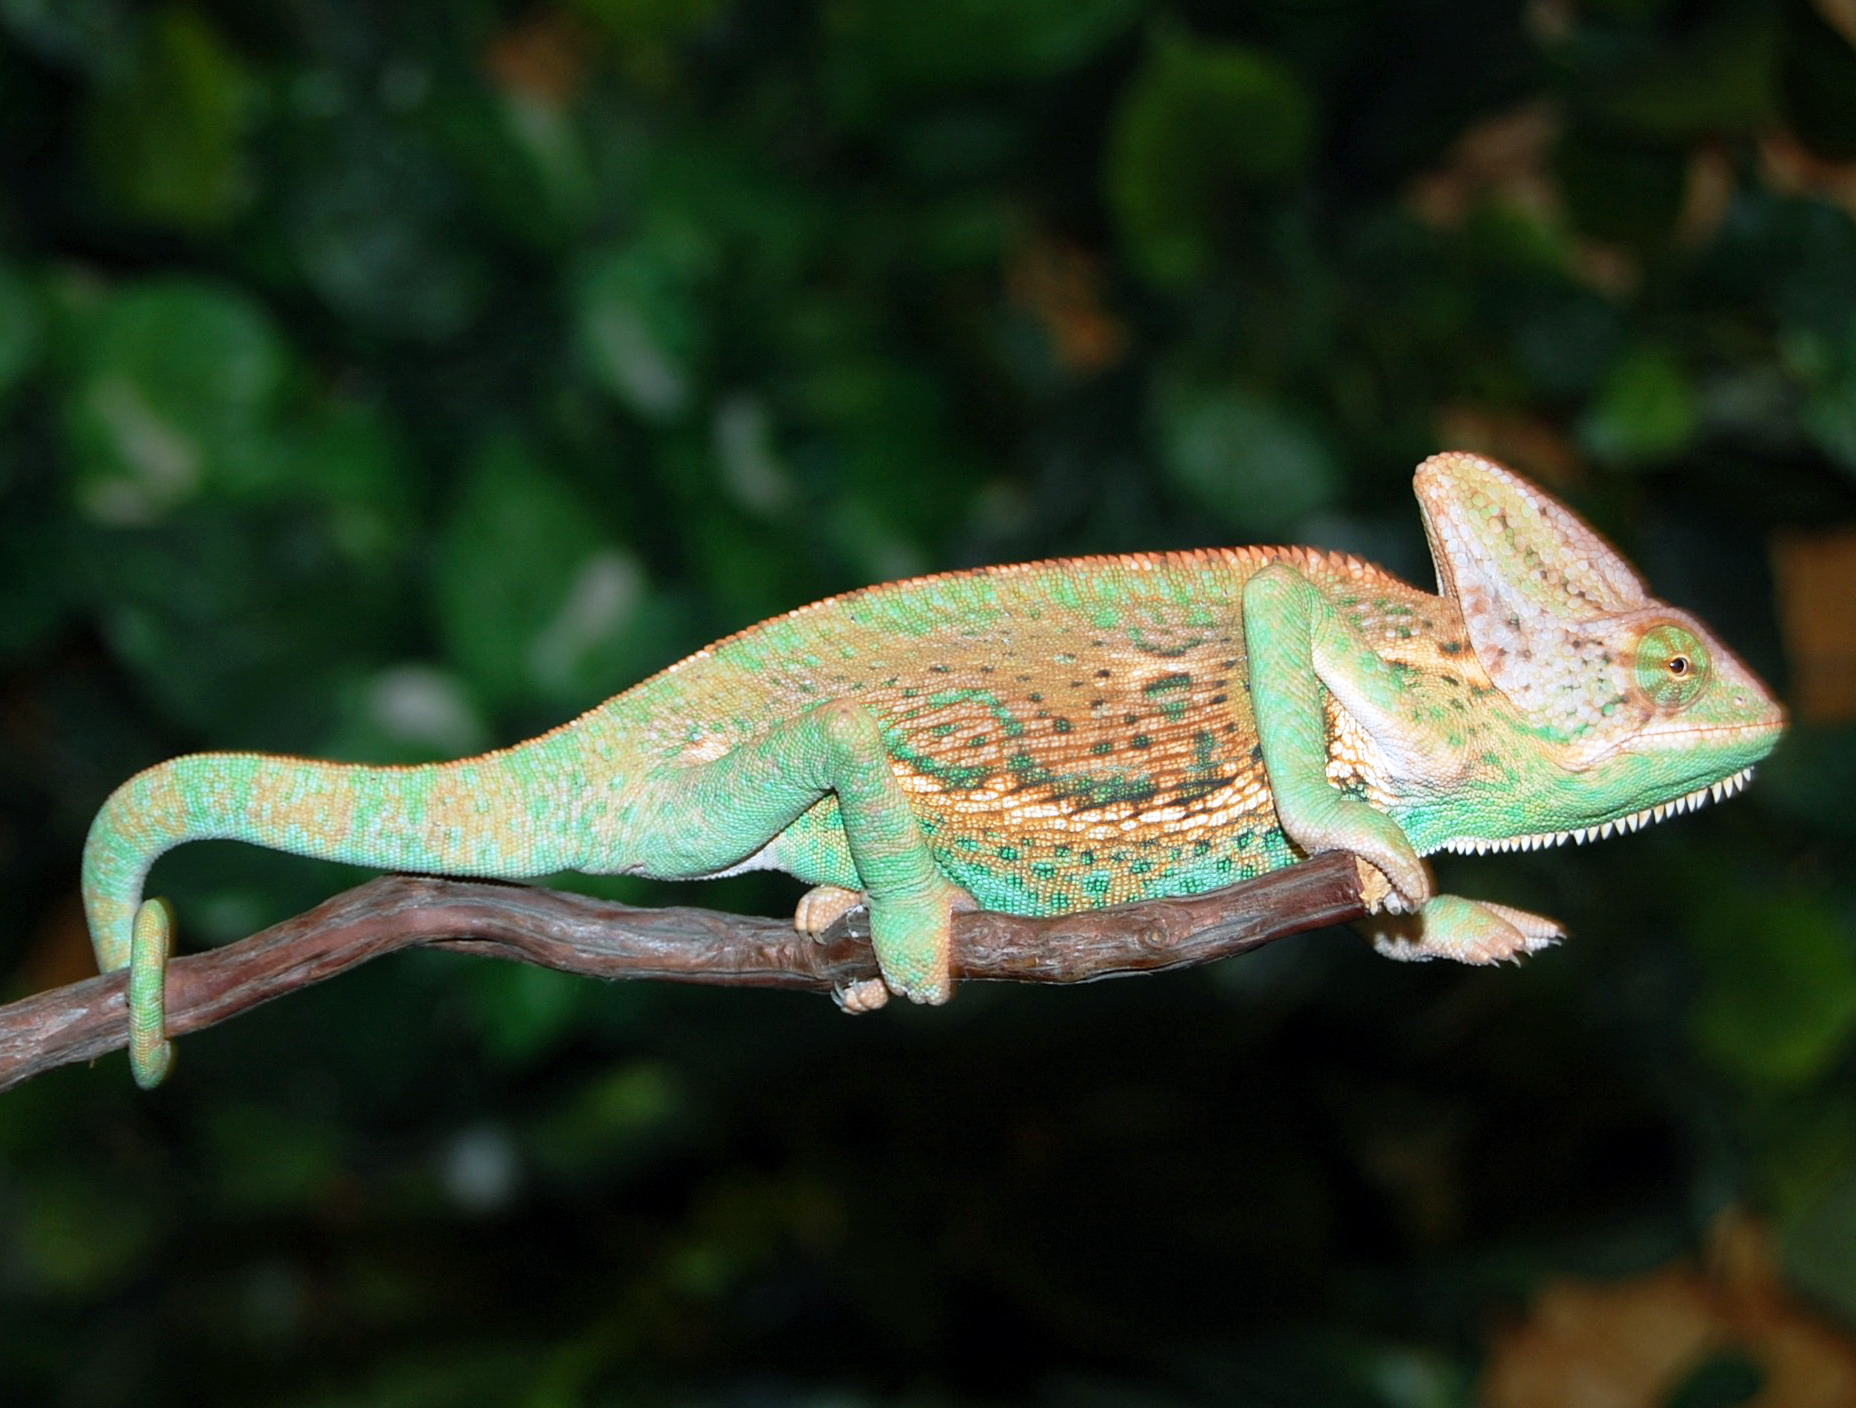 Chameleons for Sale. What do I feed my Chameleon? The staple of their diet should be crickets. They will also eat meal worms, super worms, wax worms, cock roaches, and pinkie mice.